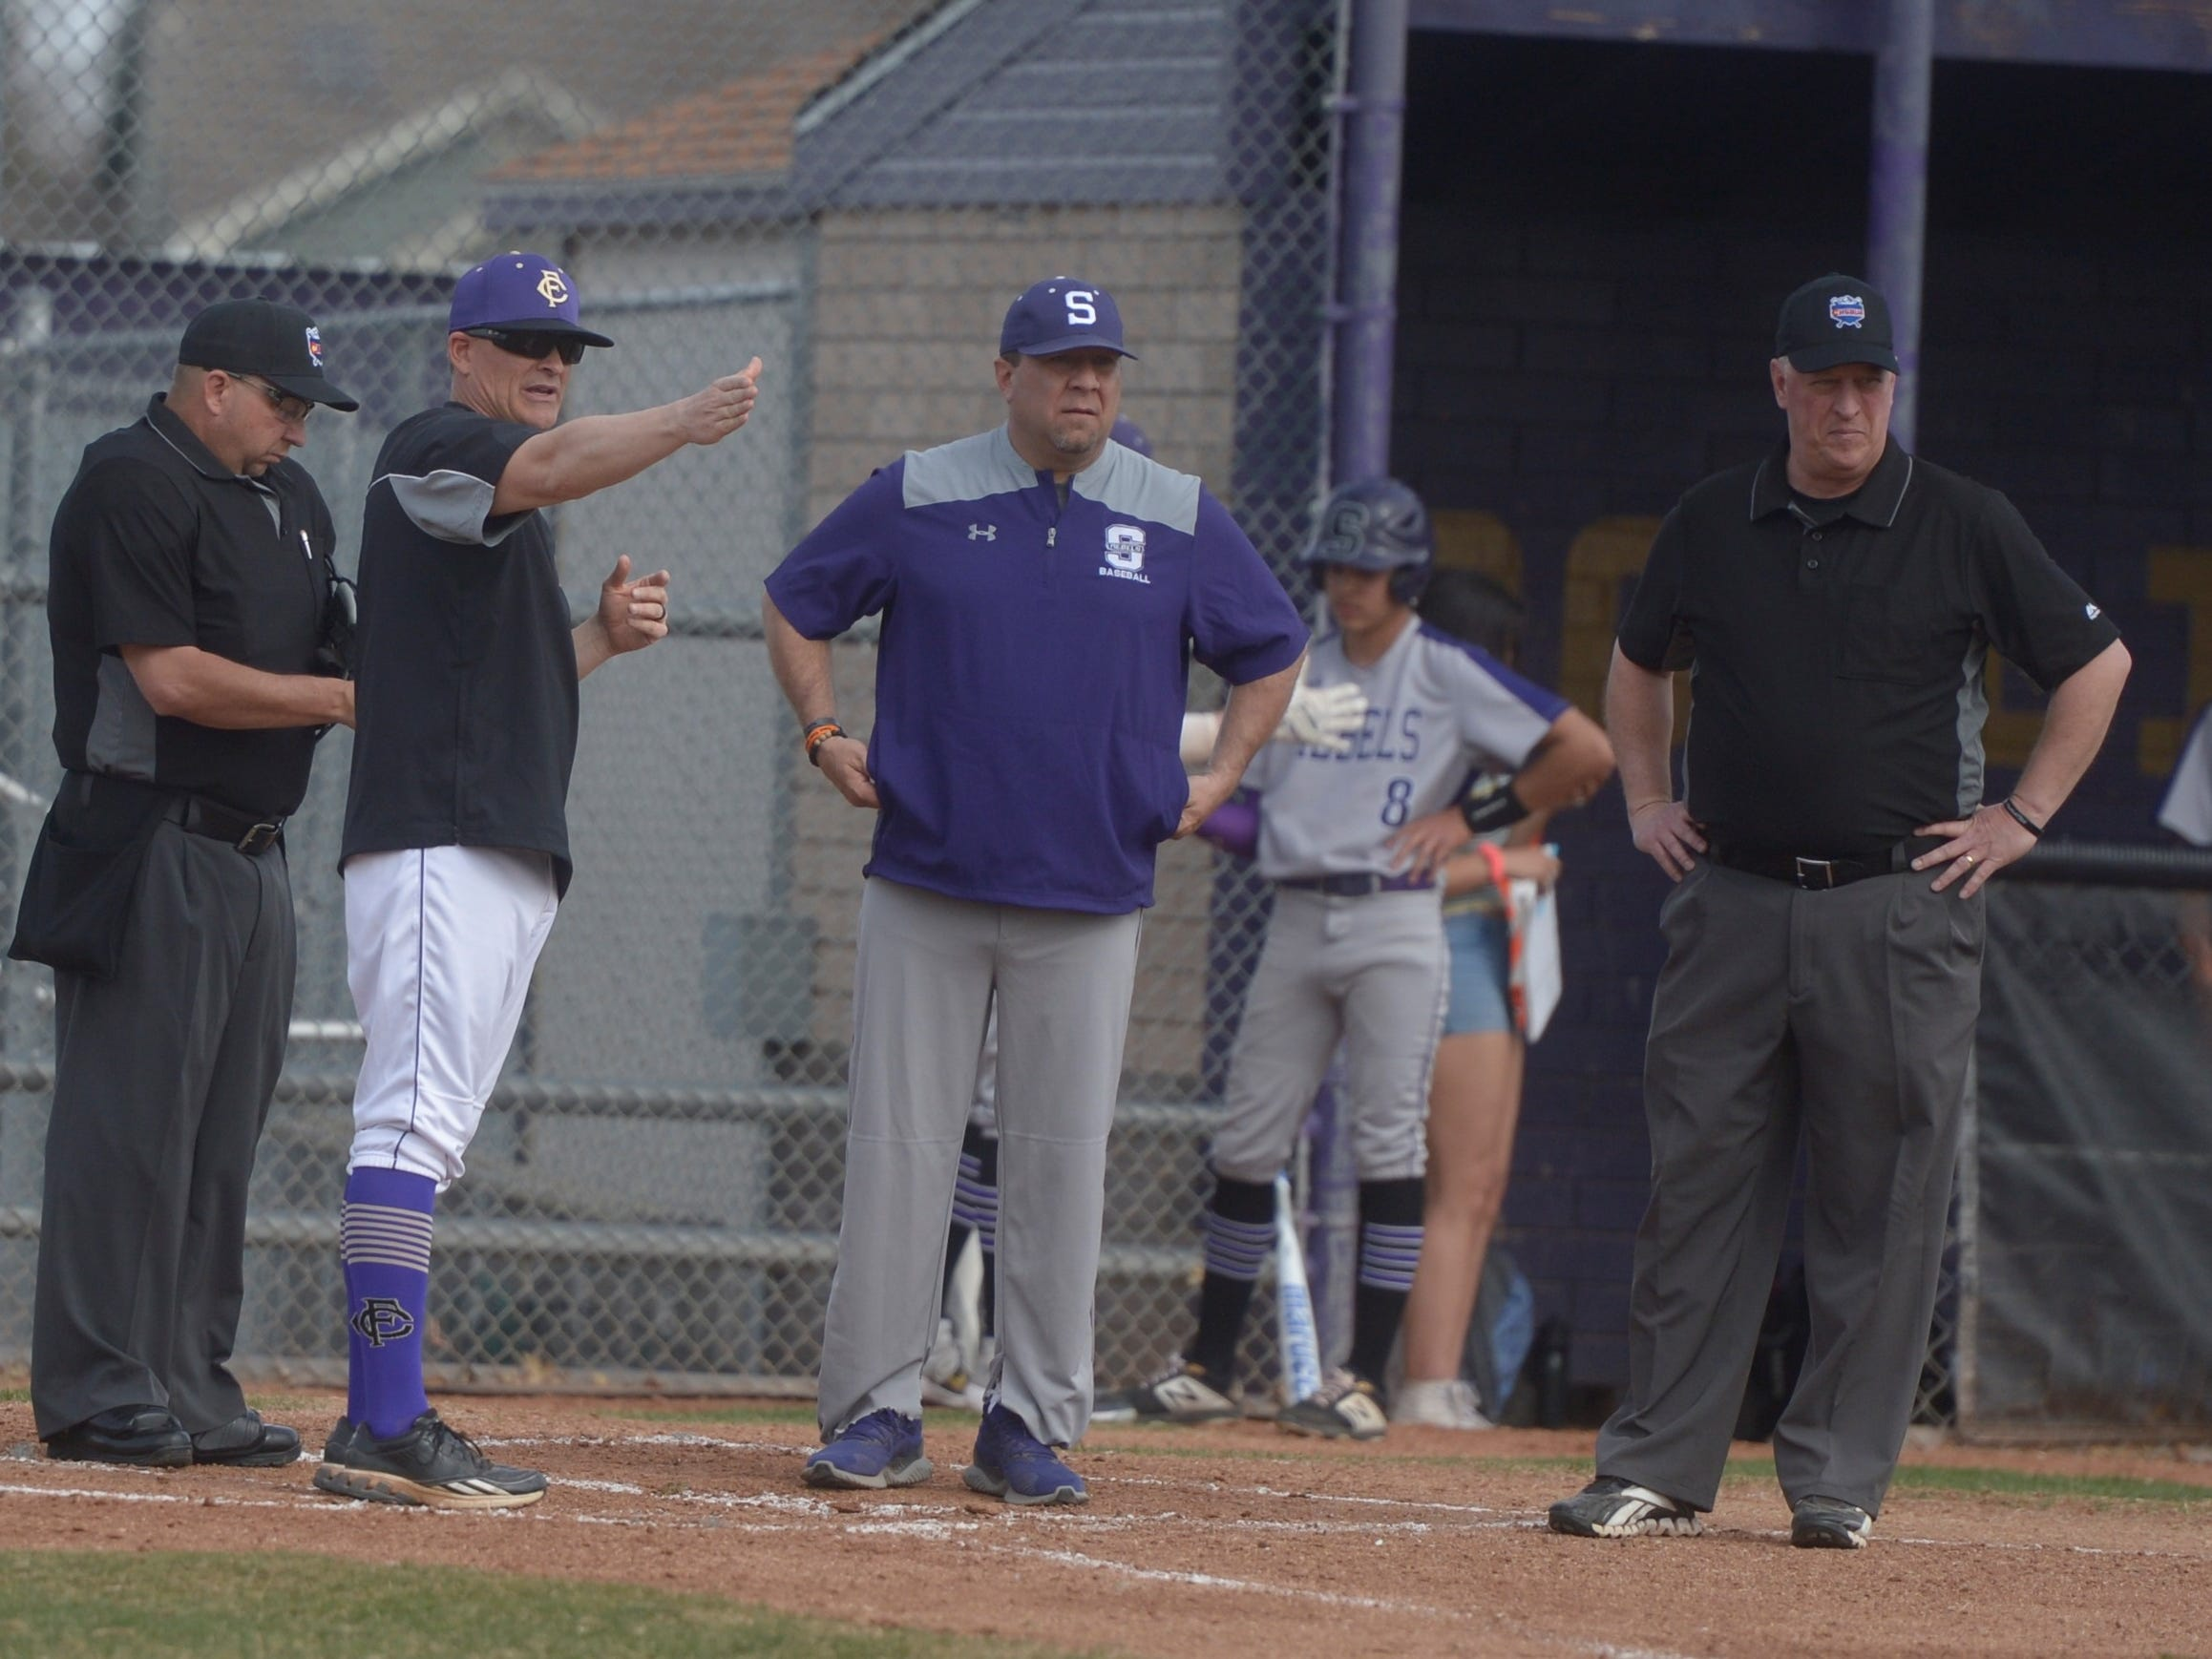 Fort Collins High School baseball coach Marc Wagner before a game against Denver South on Monday, April 8, 2019. The Lambkins won 13-3 to move to 10-0 on the season.